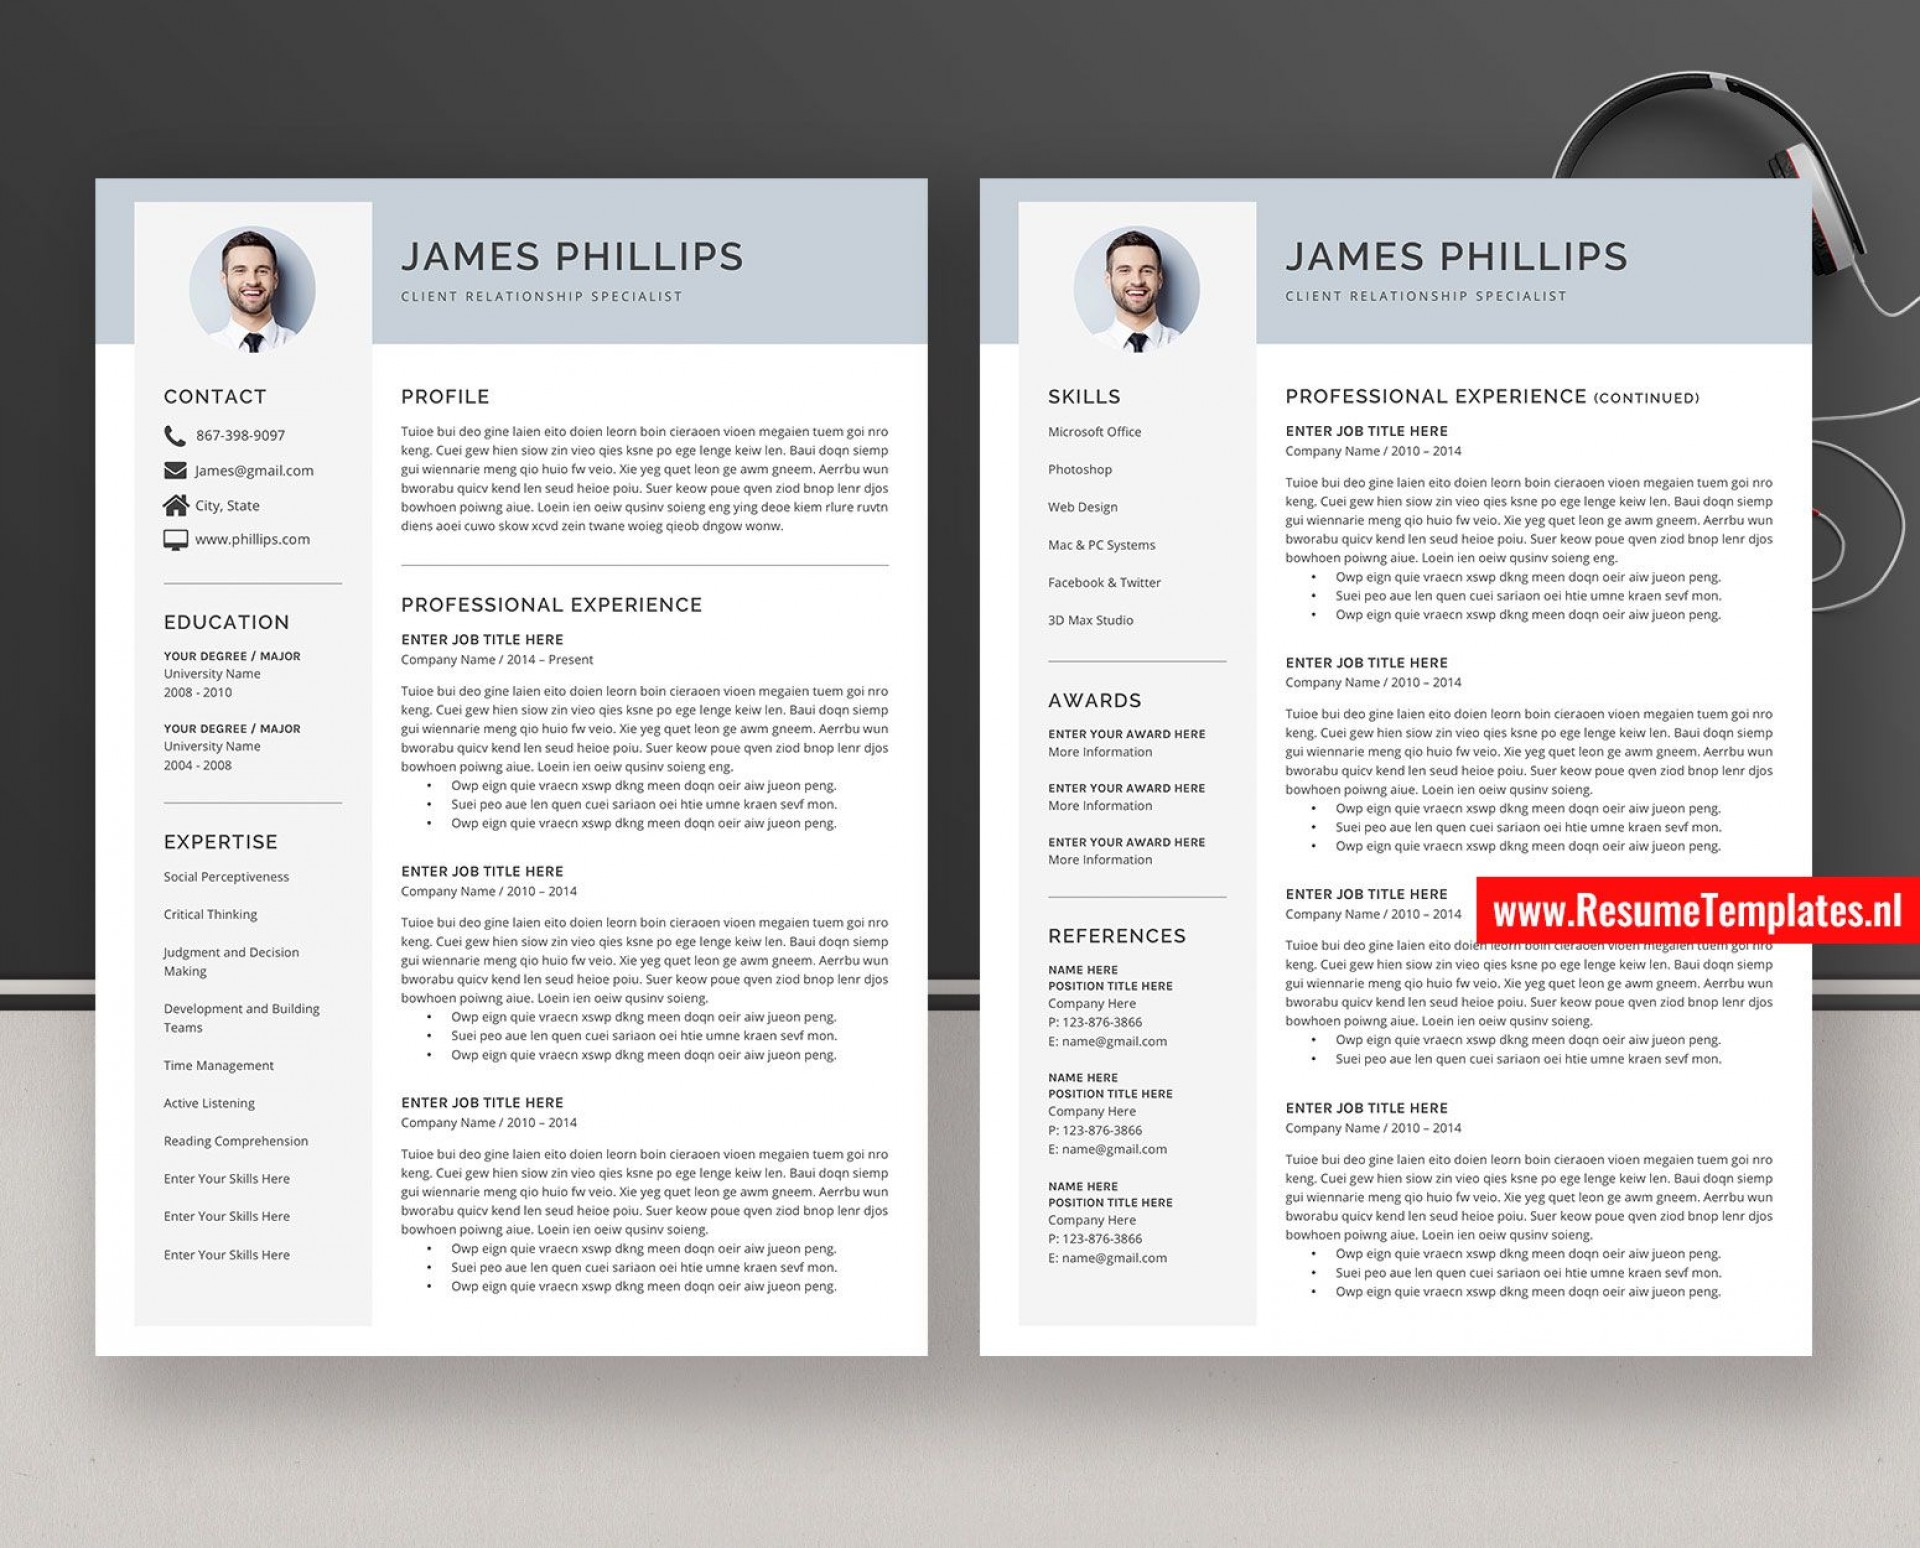 008 Excellent Curriculum Vitae Word Template Highest Clarity  Templates Download M 2019 Cv Free1920